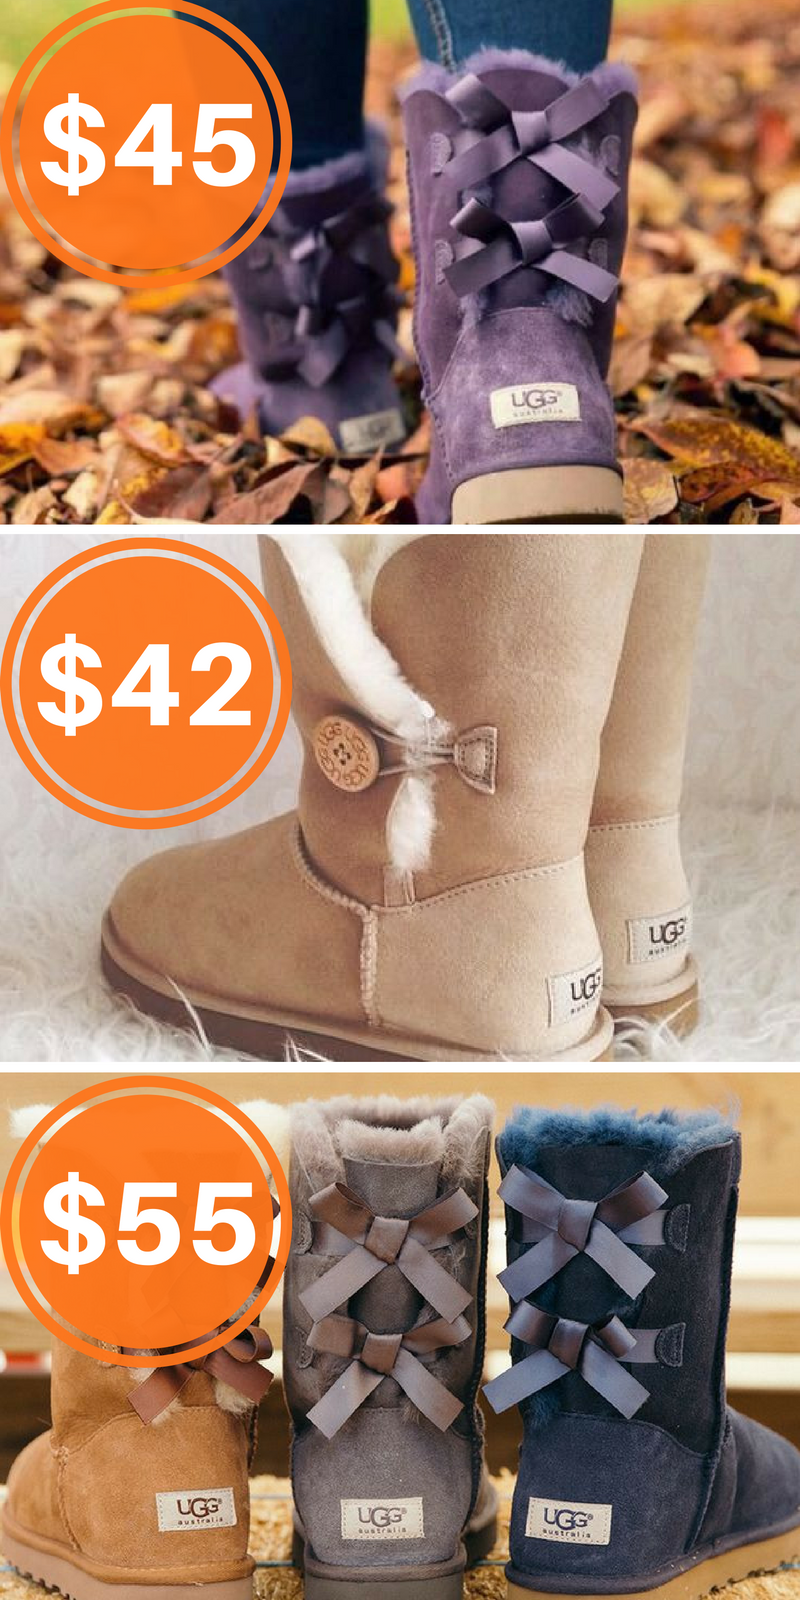 d9a25a482ab Shop Ugg Australia boots at up to 70% off when you download the FREE ...